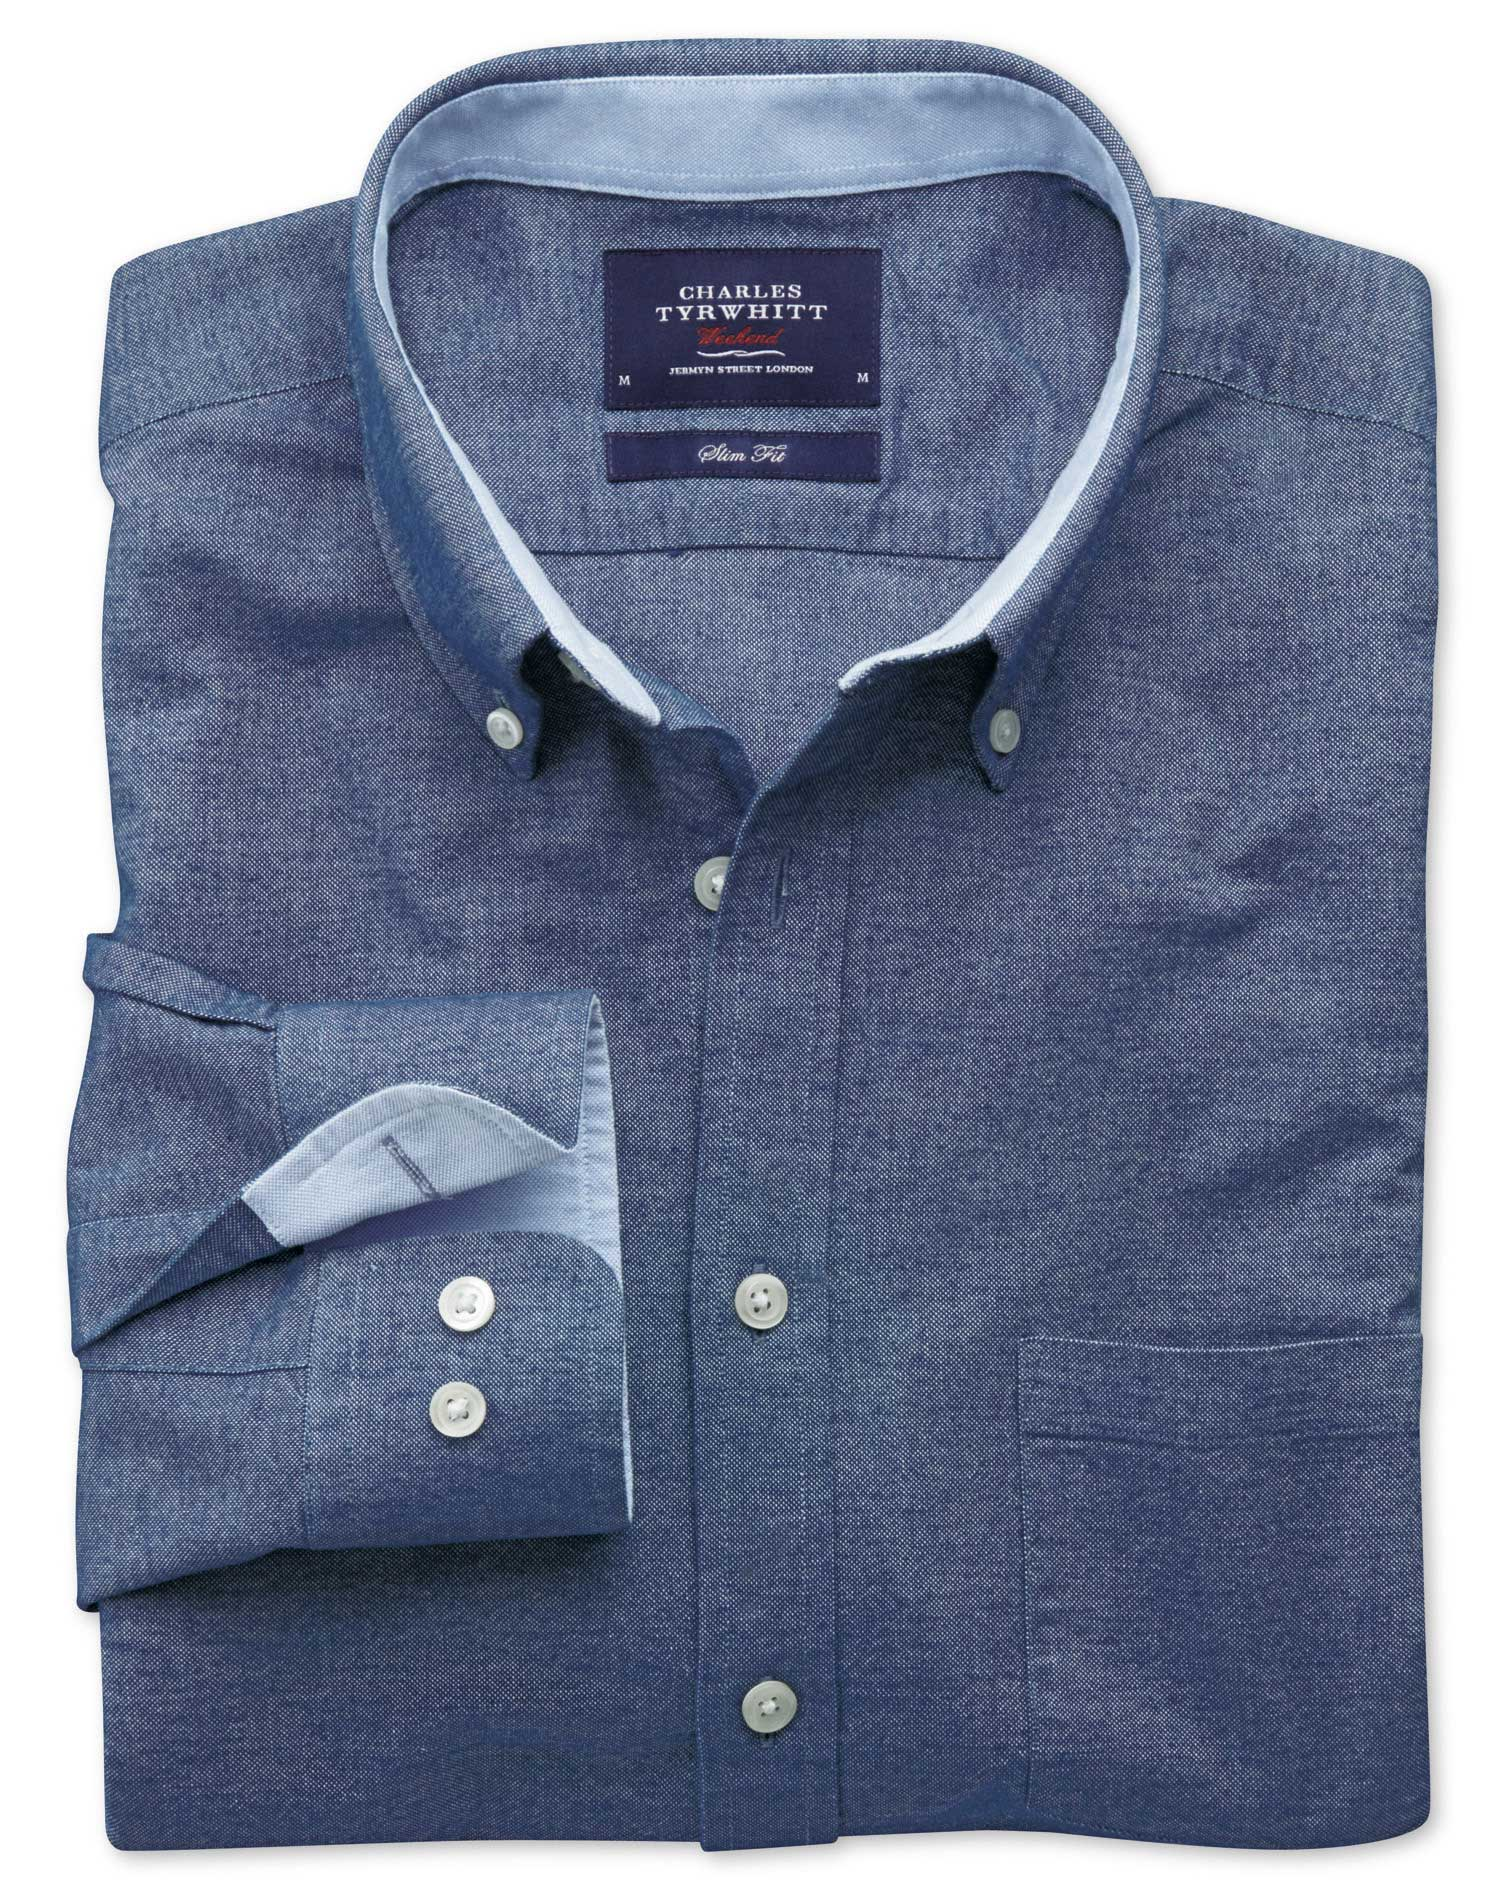 Classic Fit Denim Blue Washed Oxford Cotton Shirt Single Cuff Size Small by Charles Tyrwhitt